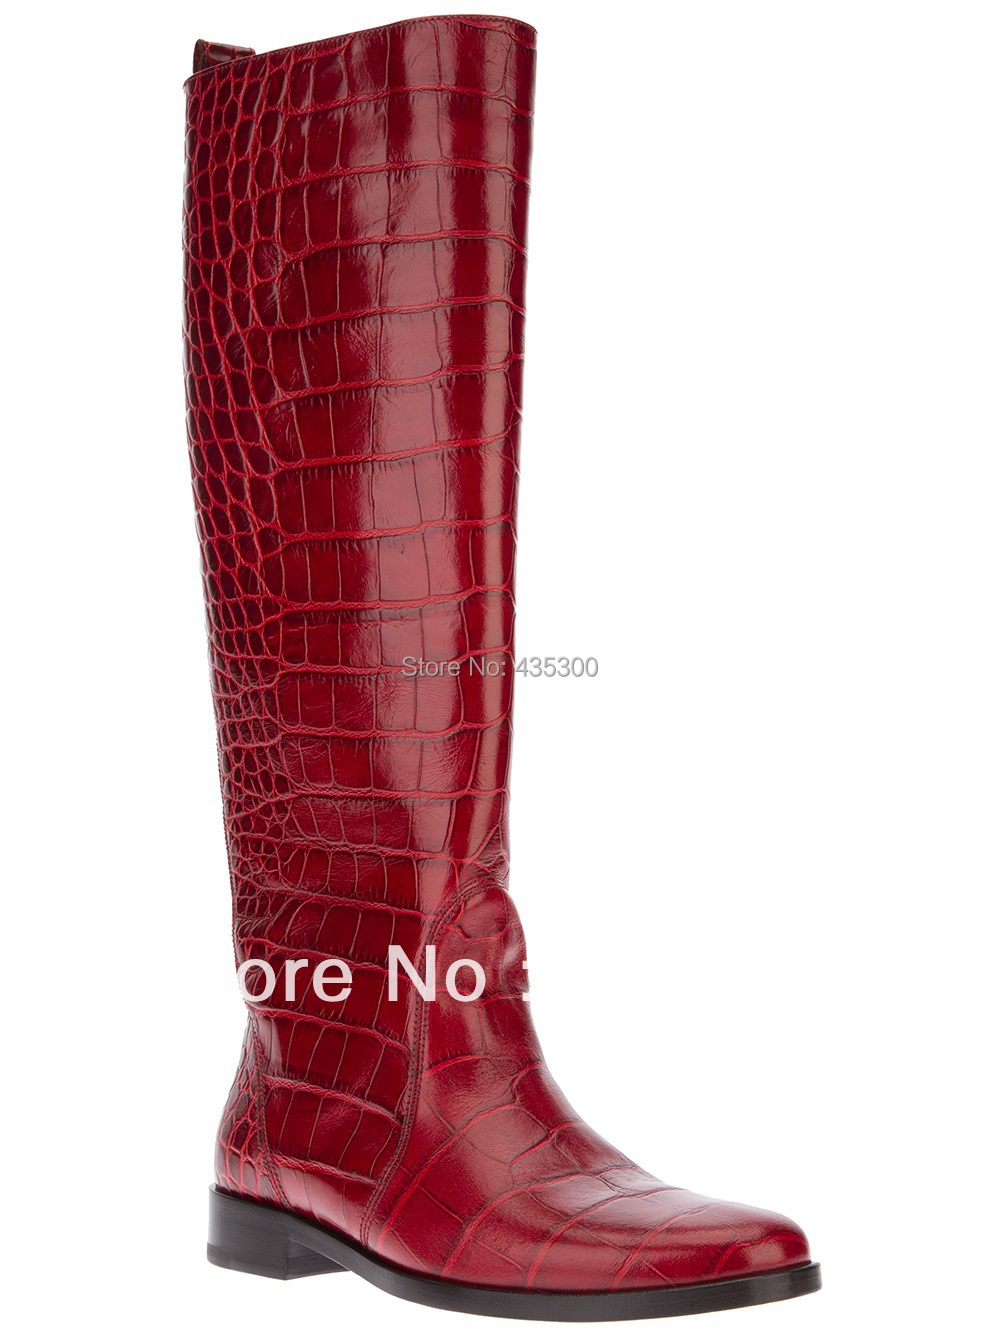 Women's Red Winter Boots | Santa Barbara Institute for ...